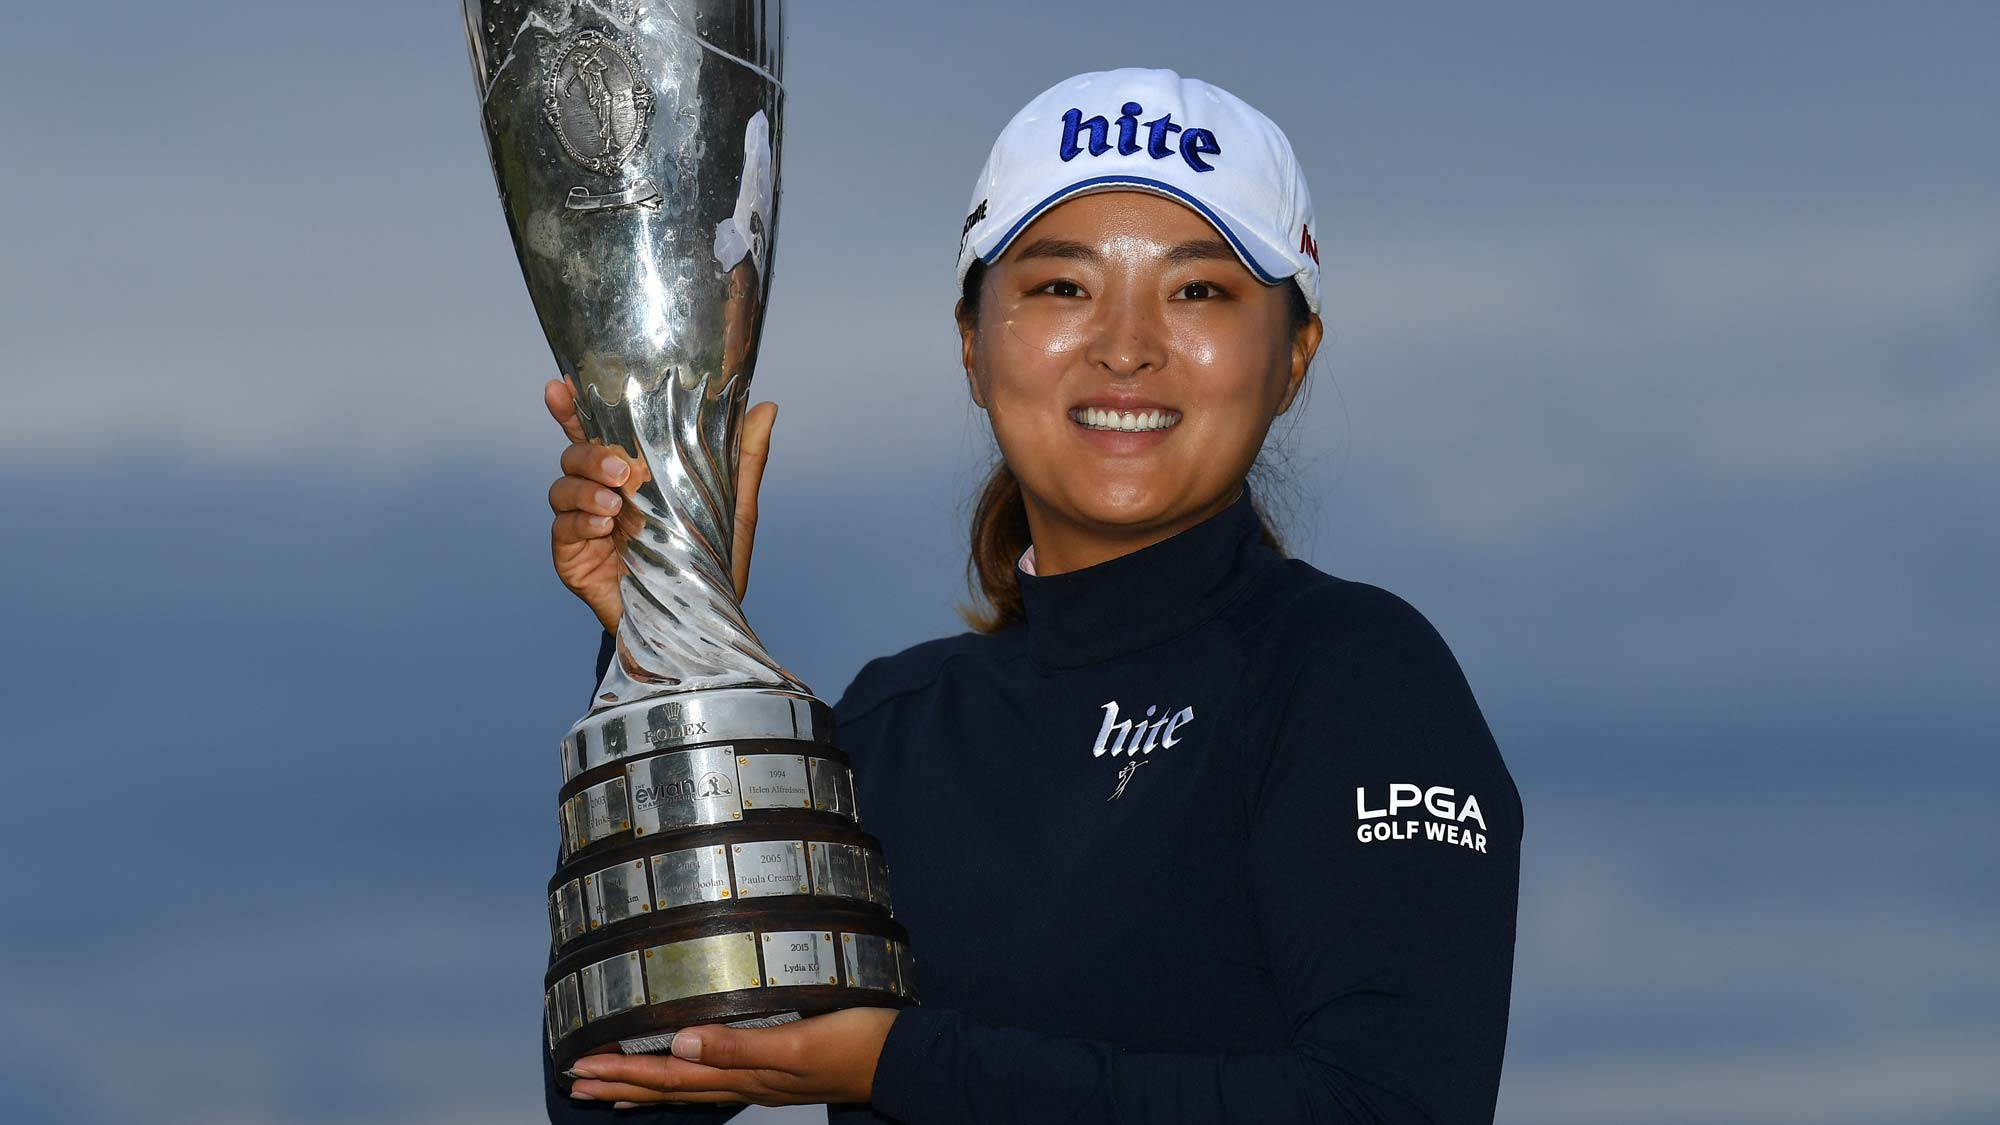 Jin Young Ko has her #BagsPacked for the 2020 Diamond Resorts Tournament of Champions after her win at the Evian Championship